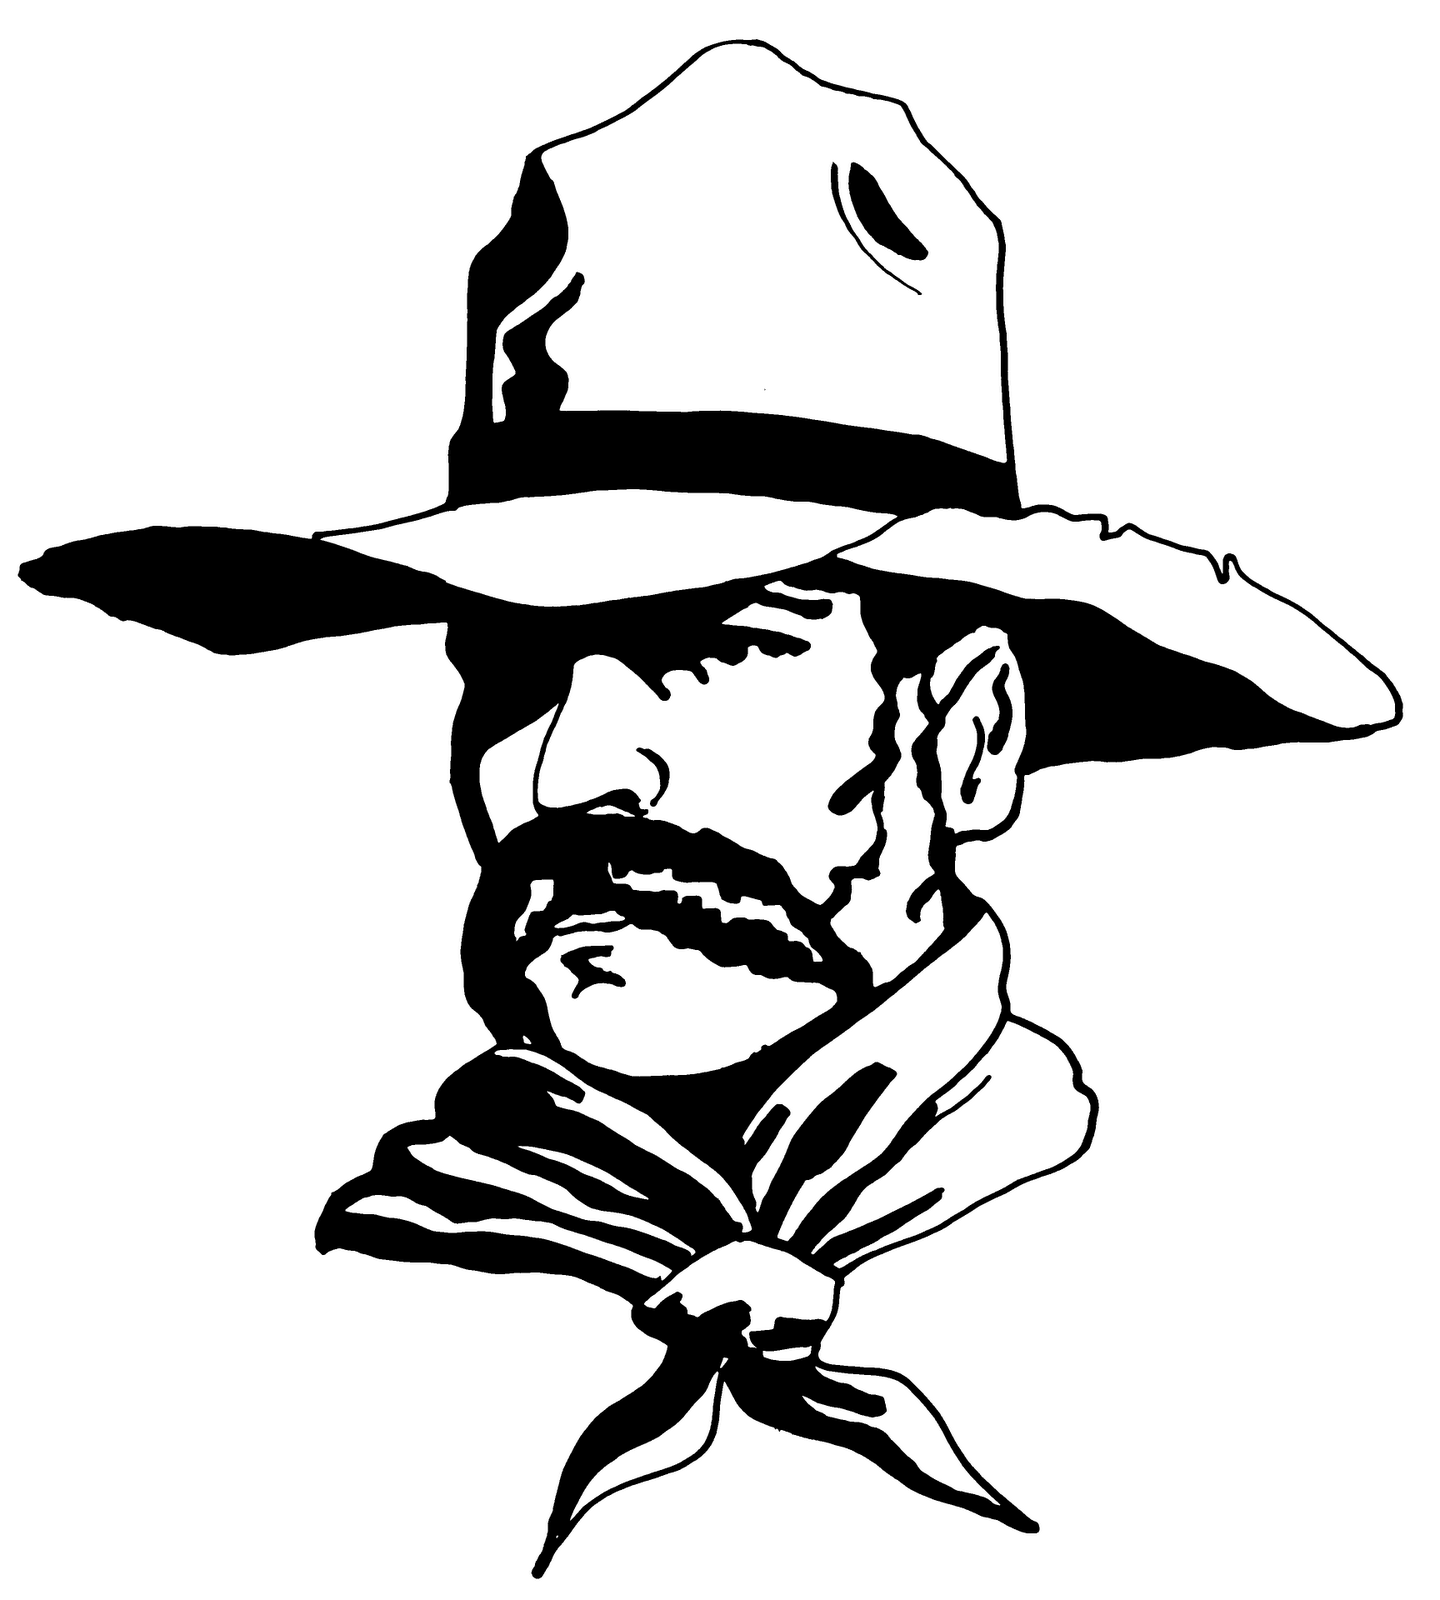 graphic library download Western clipart black and white. Free cowboy image